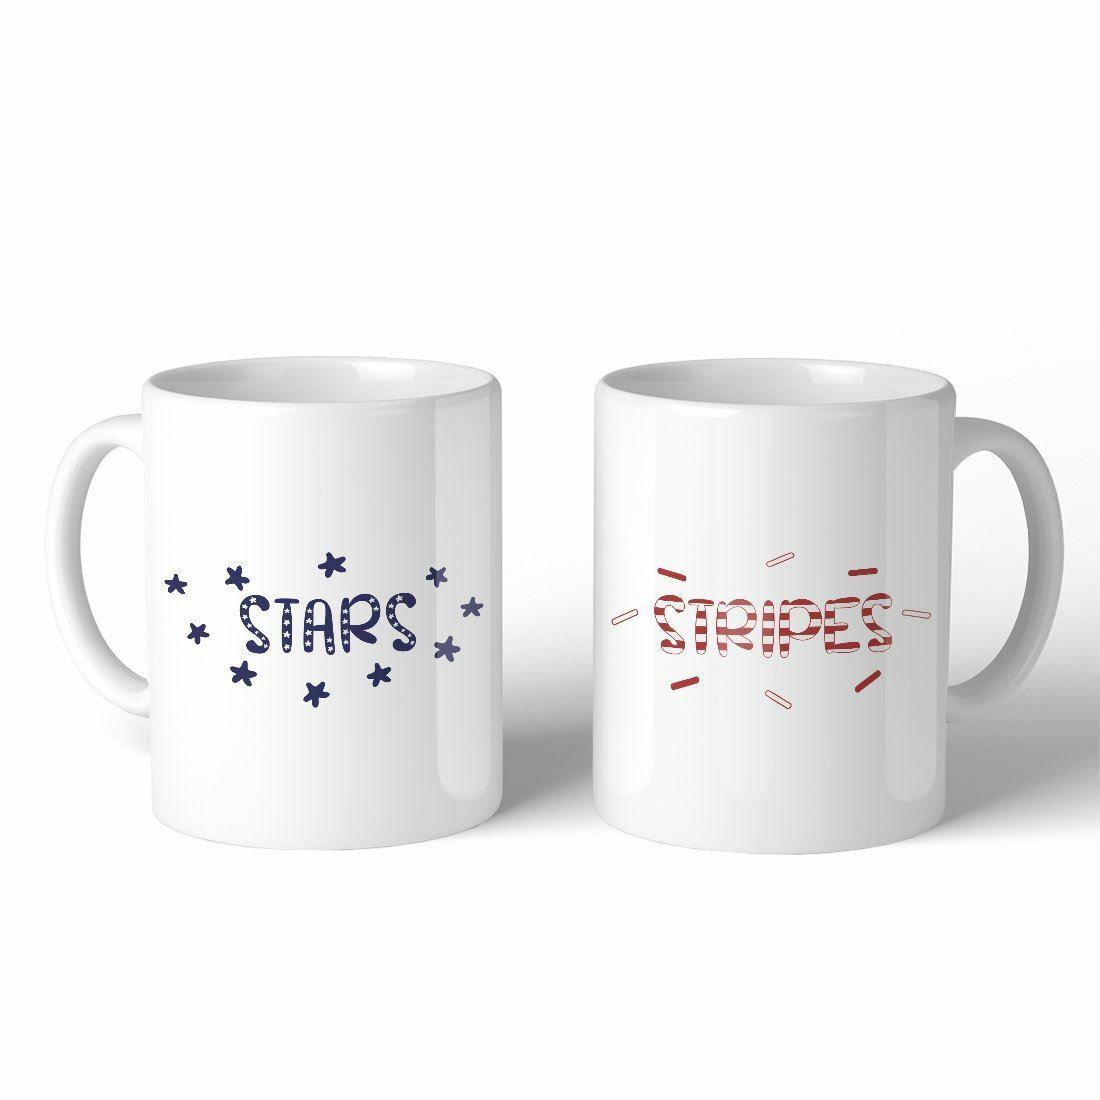 Stars And Stripes BFF Matching Gift Coffee Mugs 11 Oz Coffee Lovers - $24.99